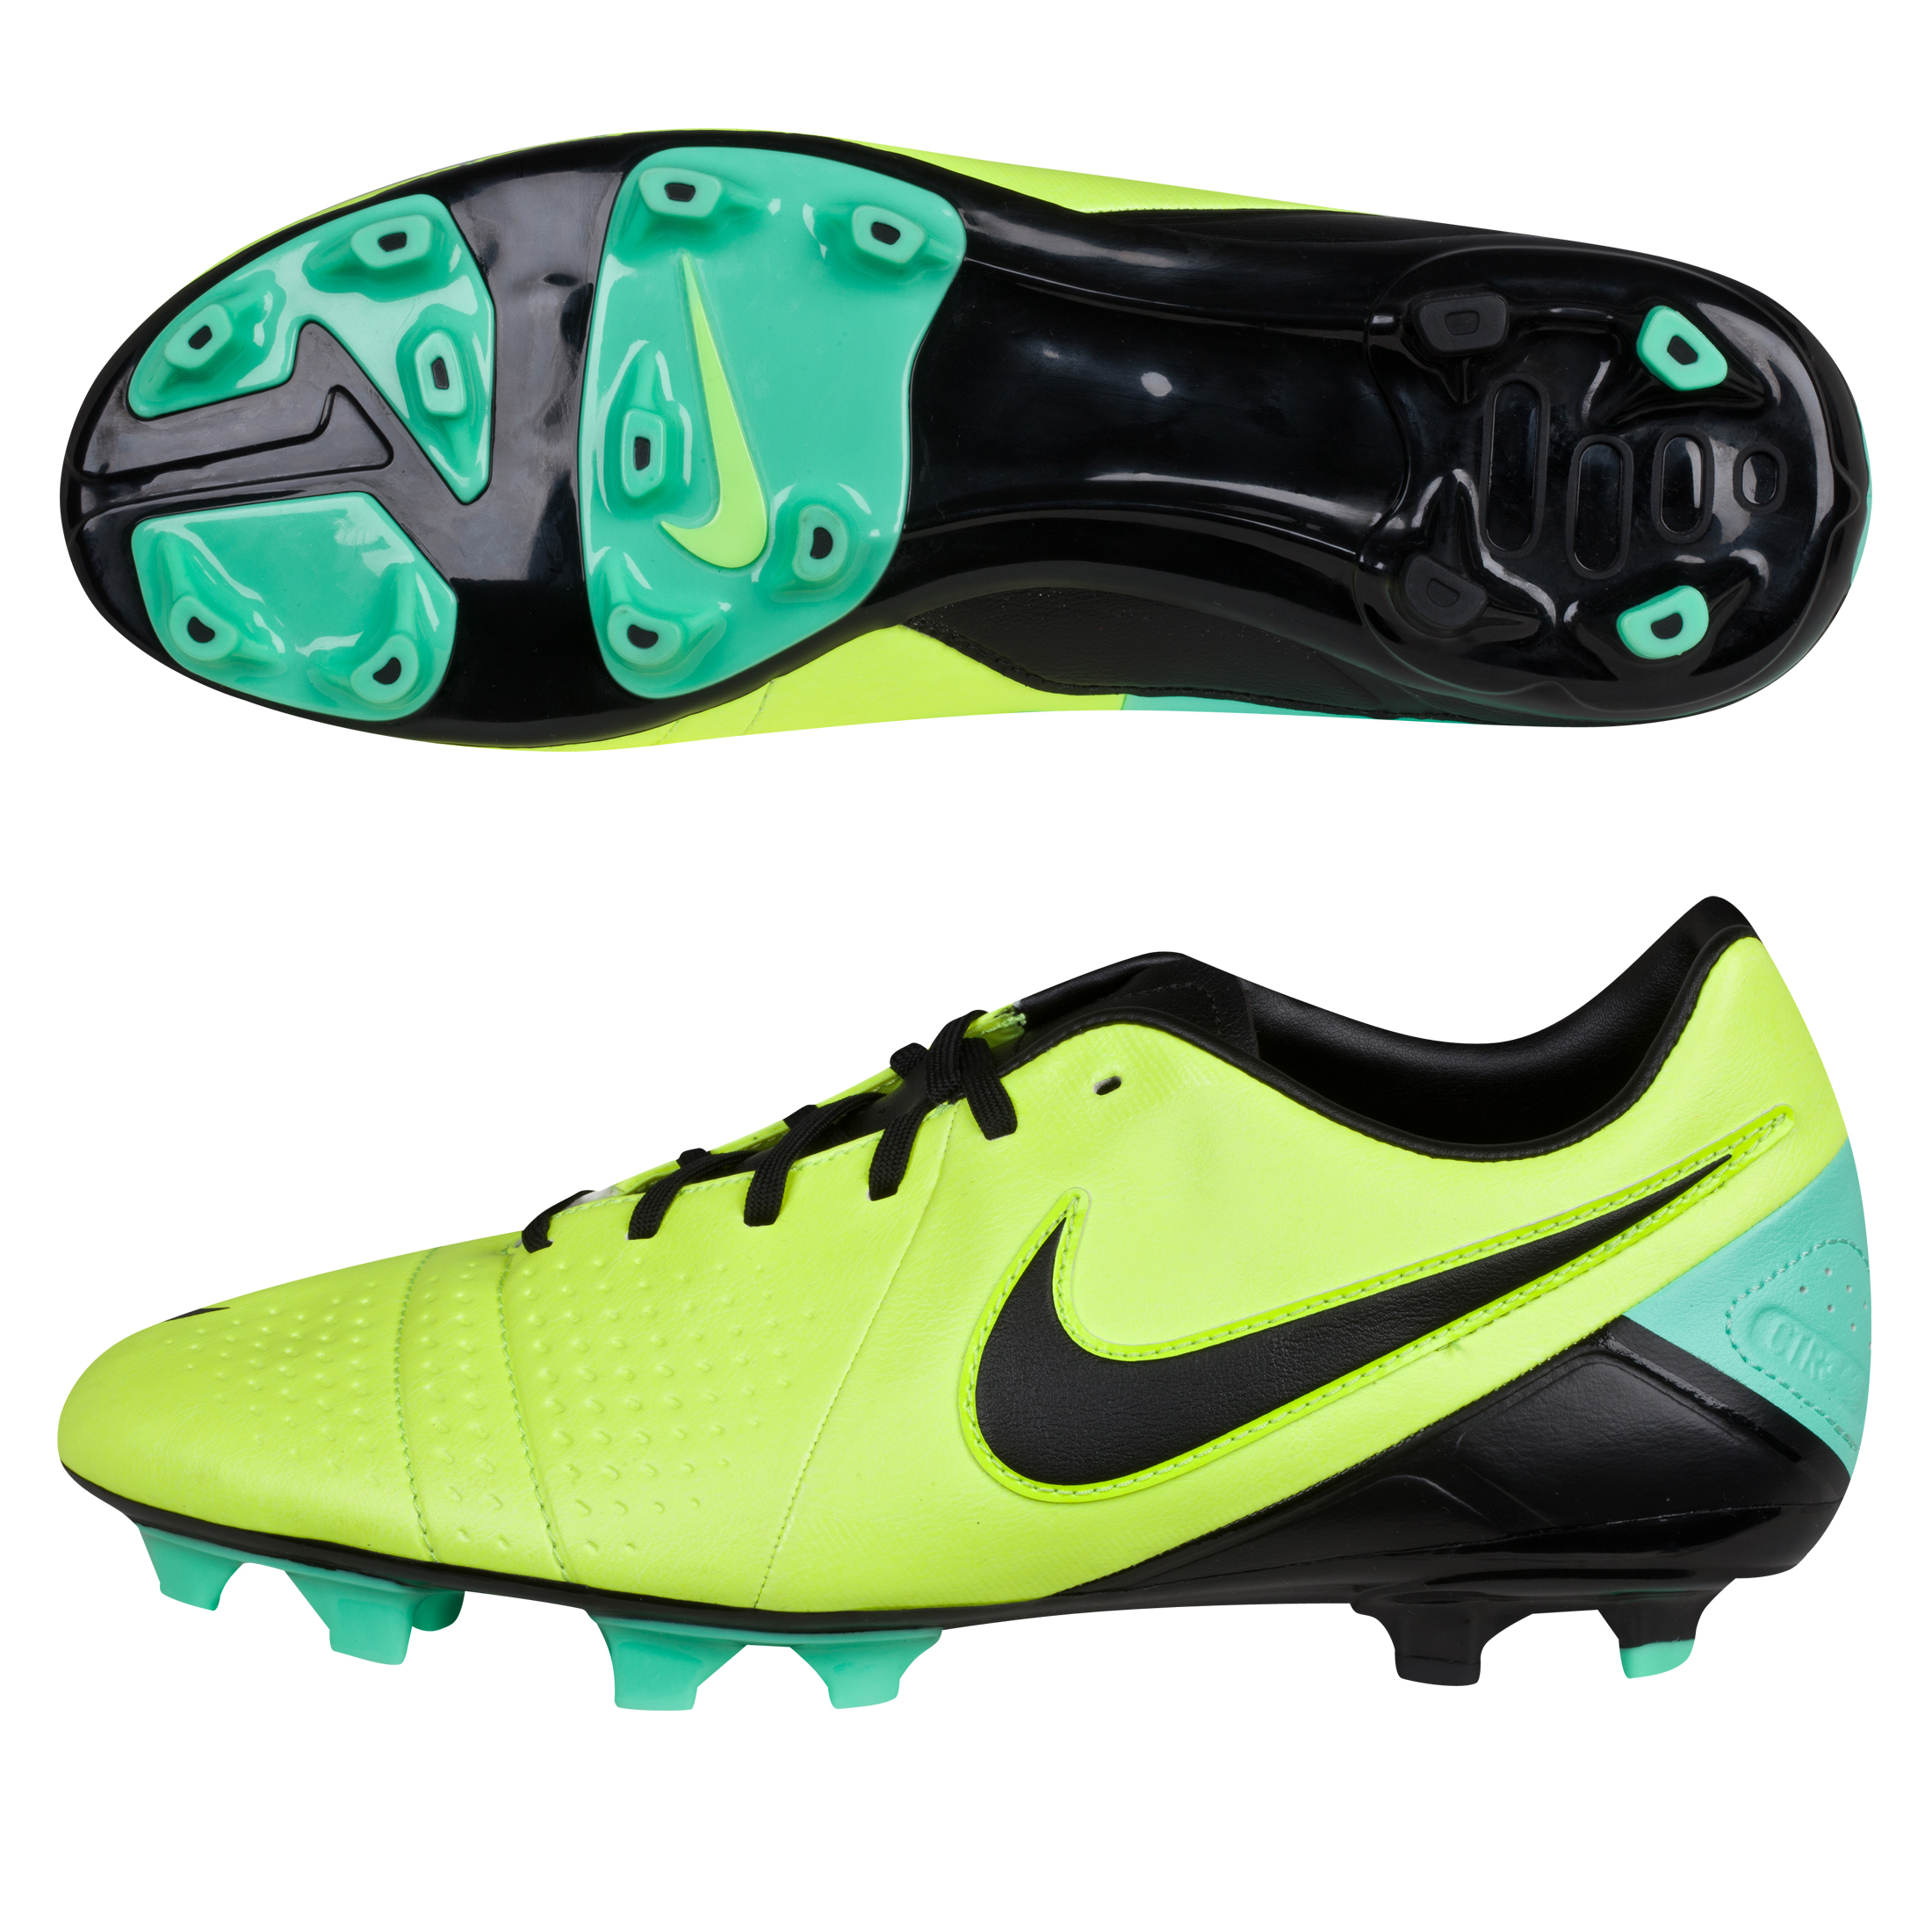 Nike CTR360 Libretto III Firm Ground Football Boots Yellow